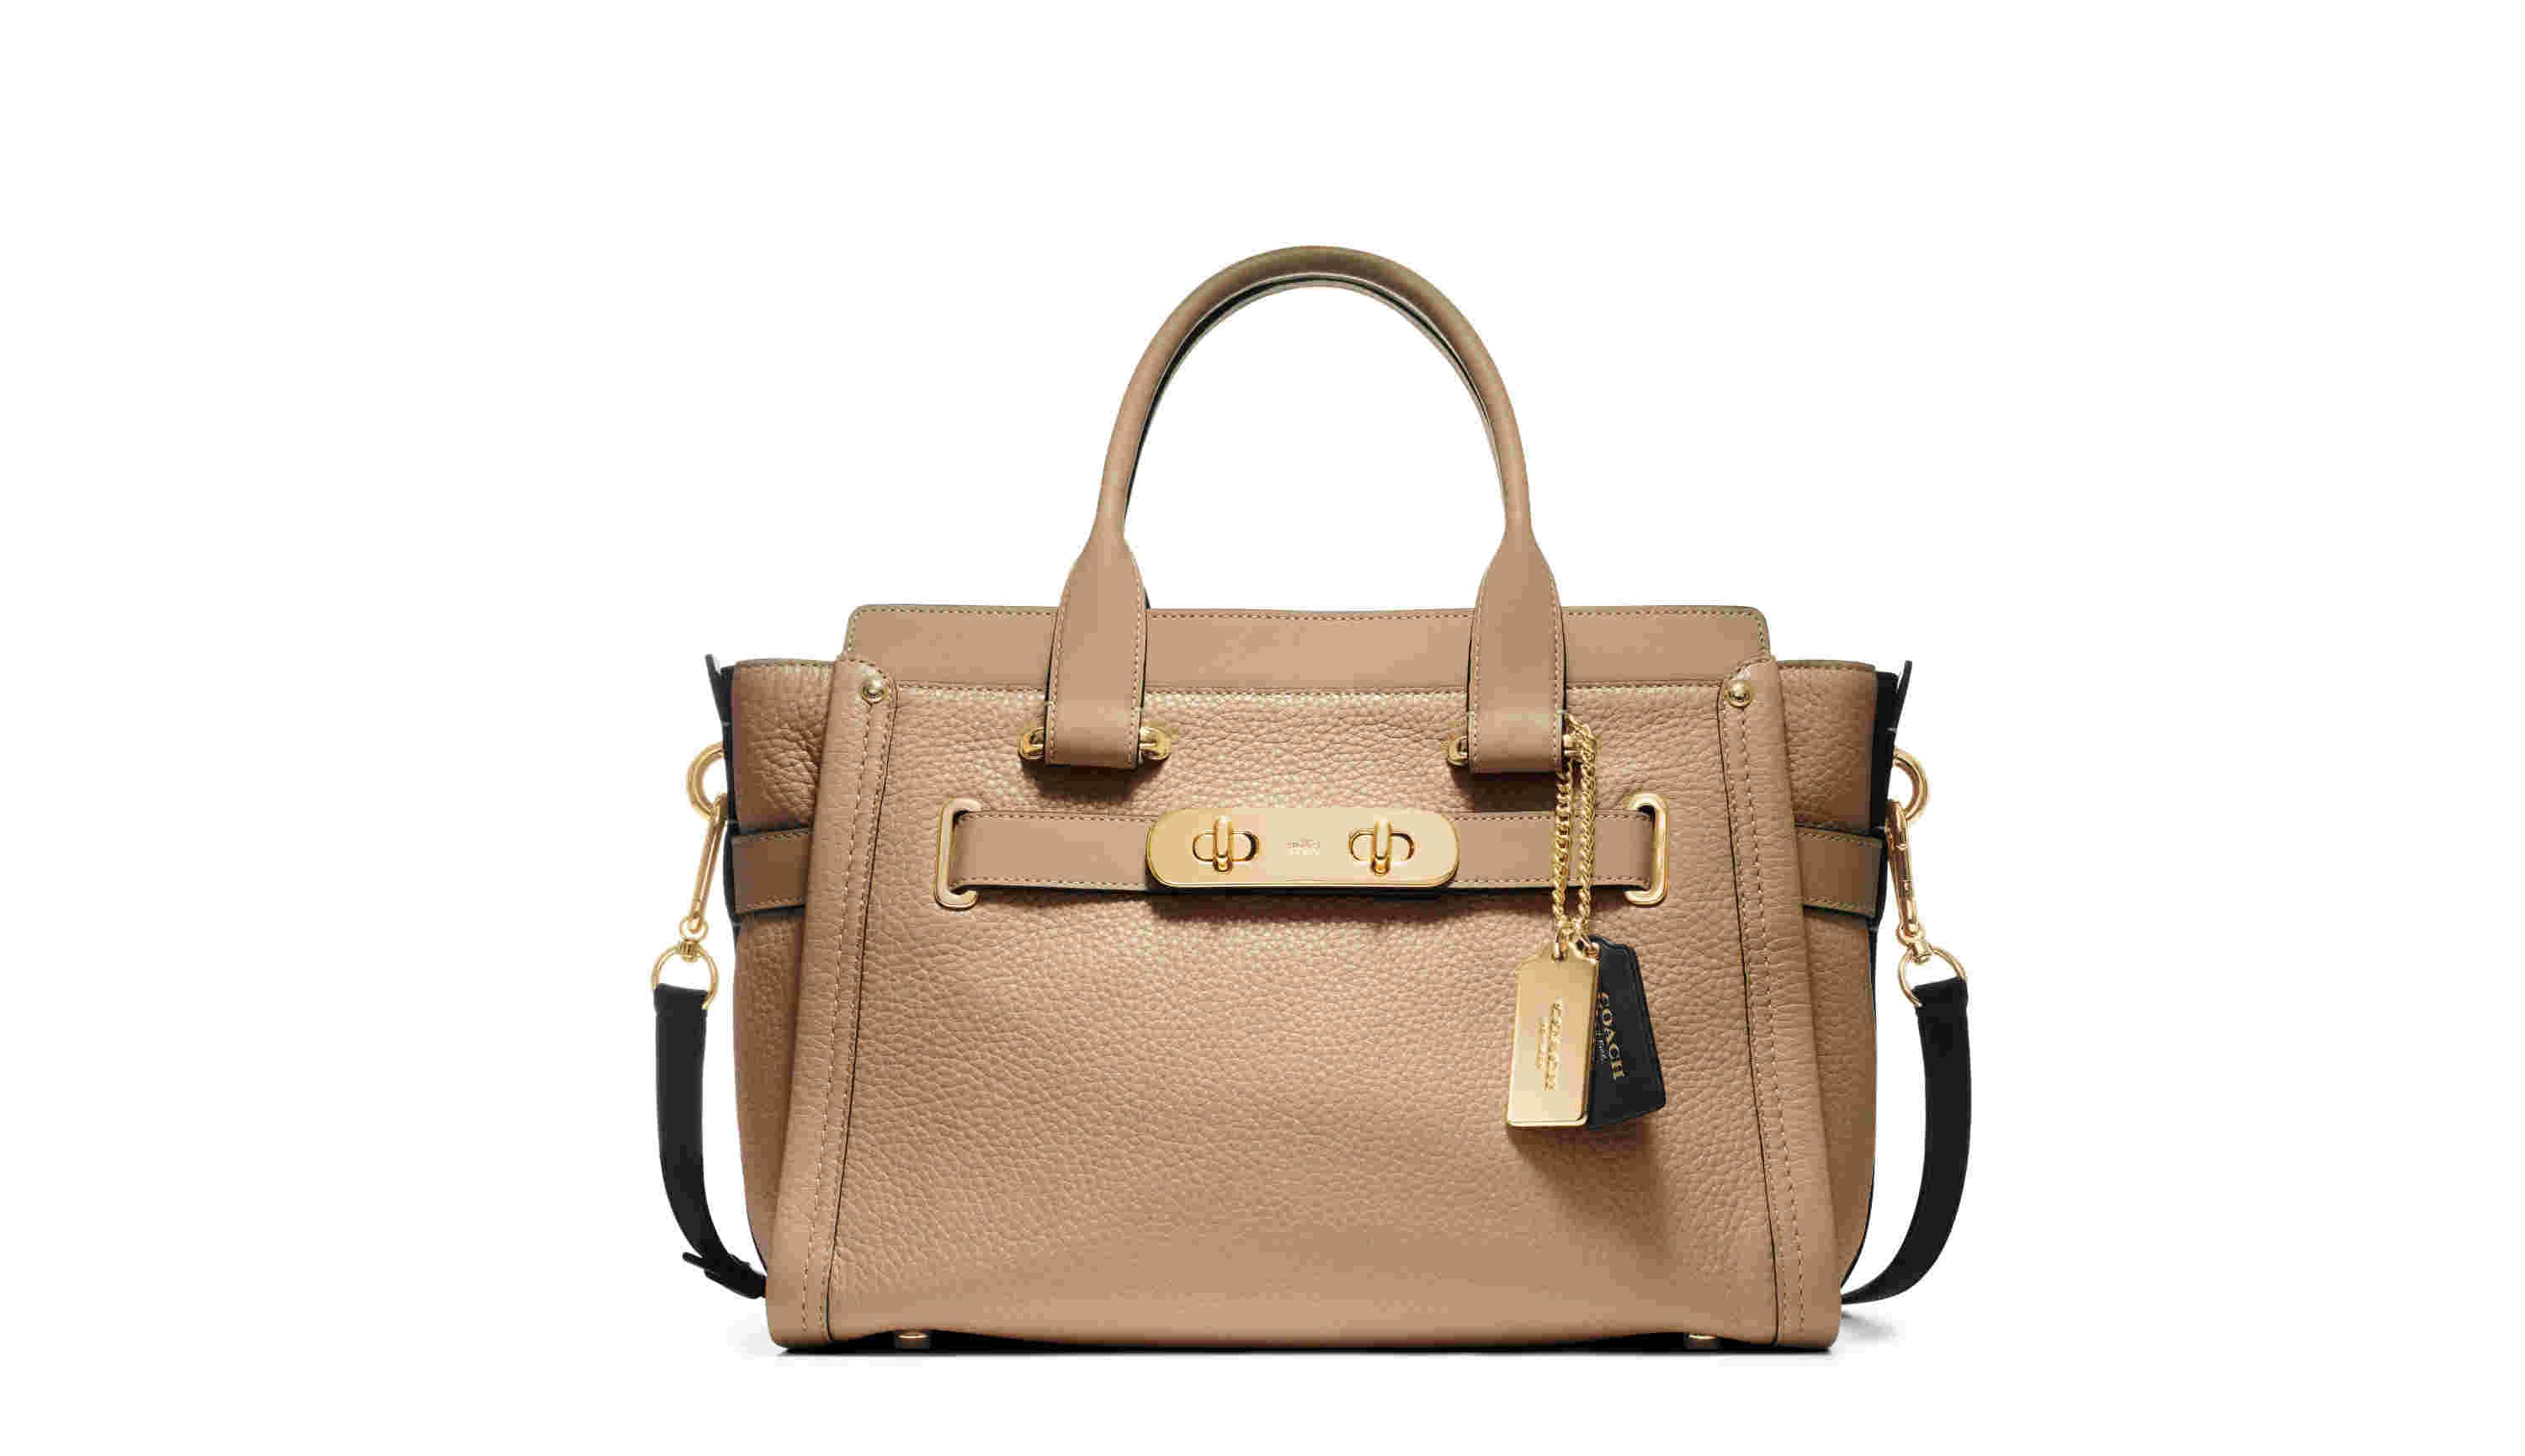 Colorblock Lthr Coach Swagger 27 Carryall